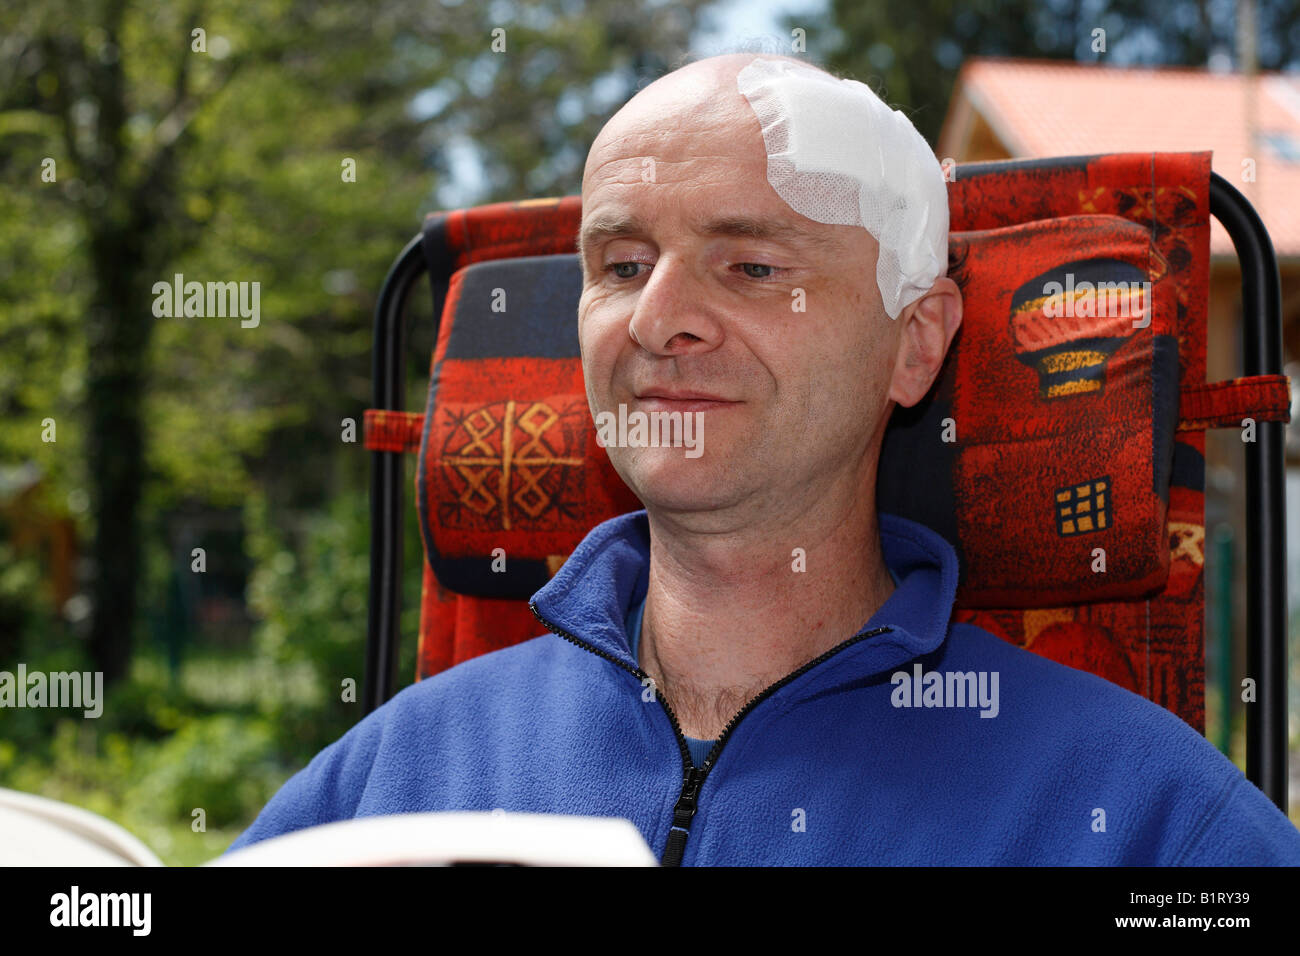 Man, 45, with an adhesive bandage on his head, sitting in a garden chair reading a book, Geretsried, Bavaria, Germany, Stock Photo